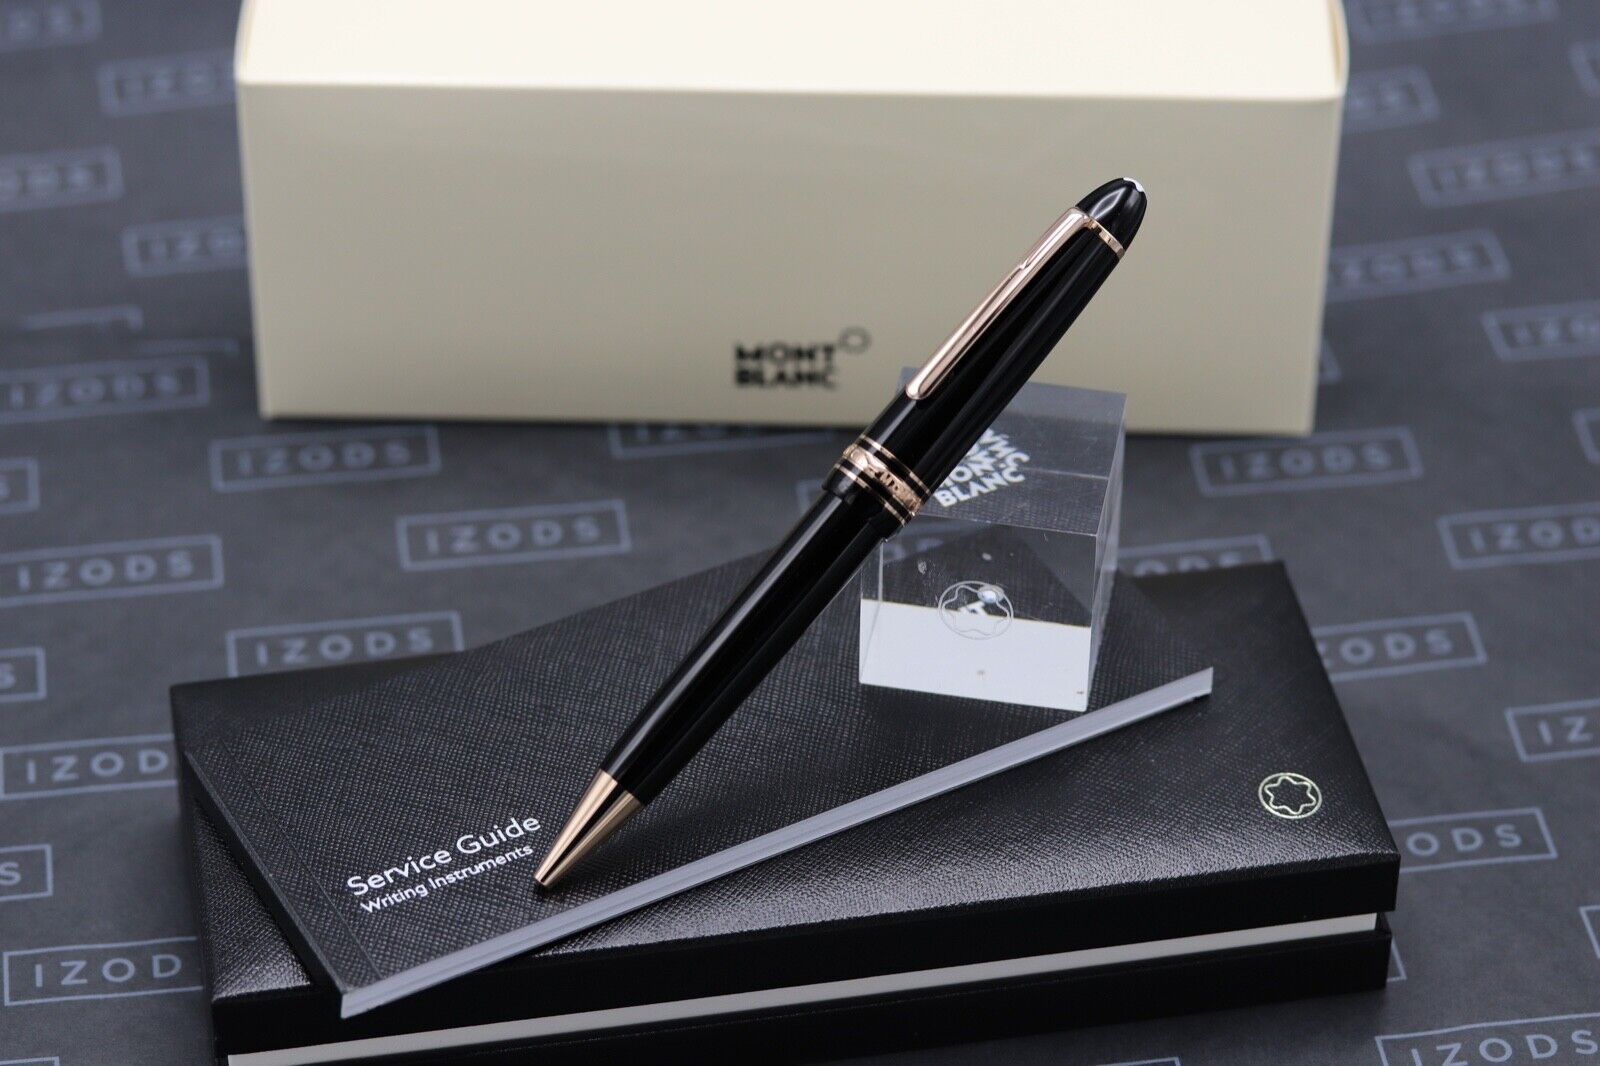 Montblanc Meisterstuck 161 LeGrand Red Gold Ballpoint Pen - NEW March 2021